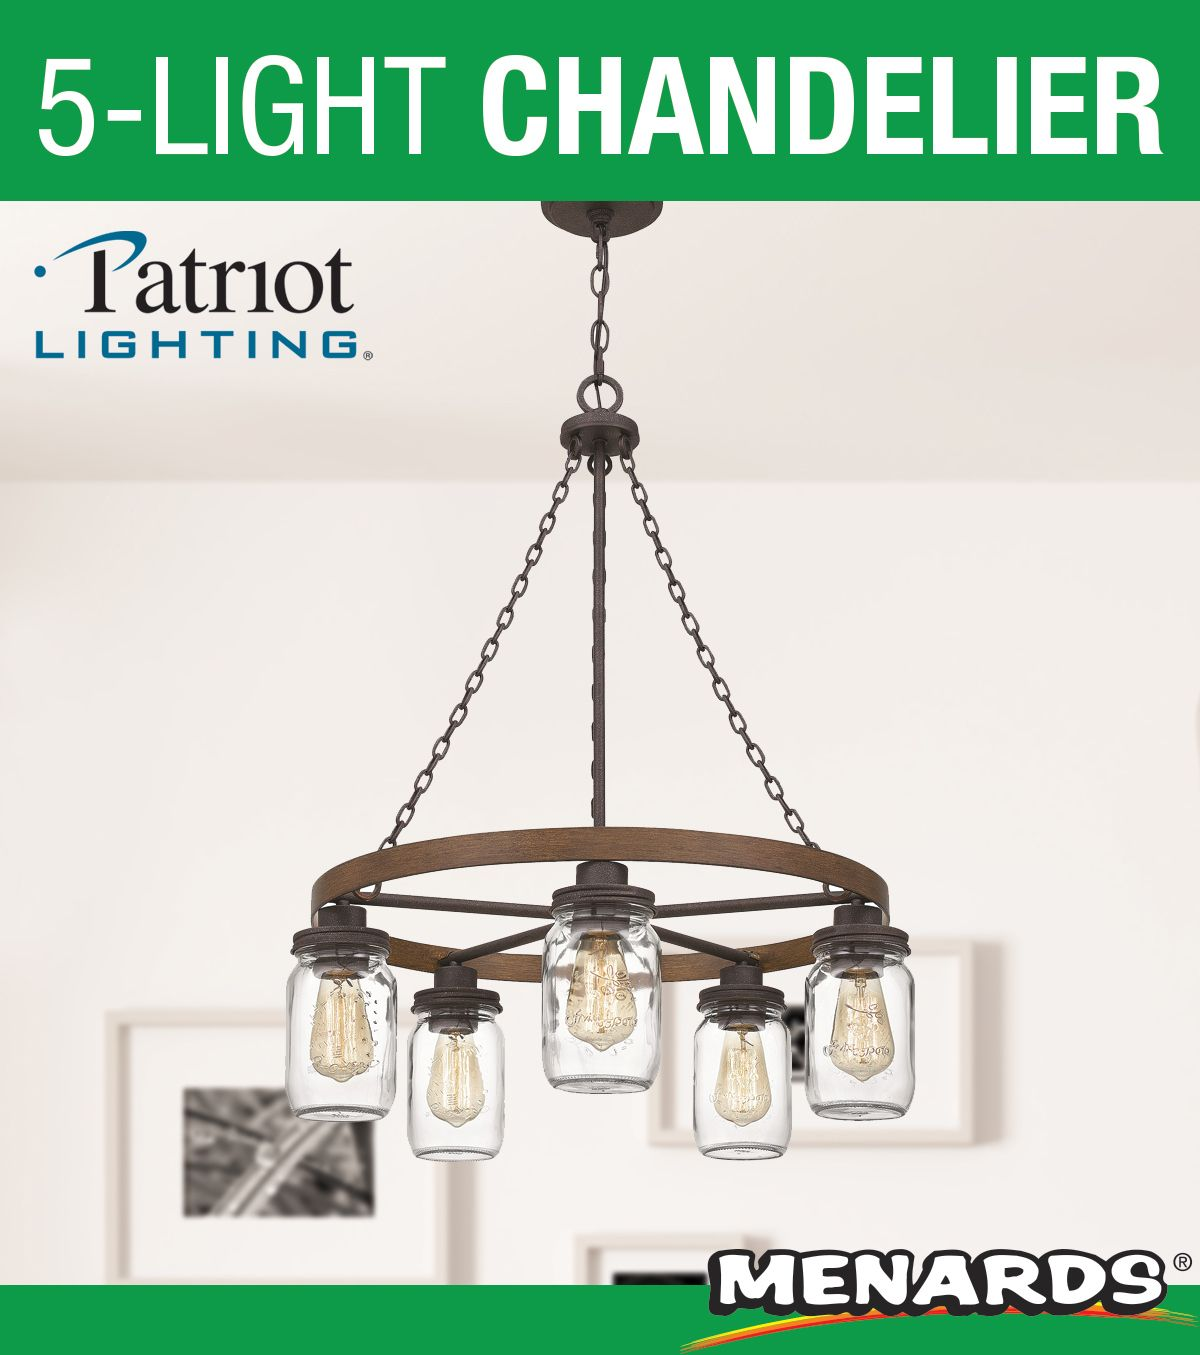 Patriot Lighting Elegant Home Wheland Matte Black And Faux Wood 5 Light Chandelier Chandelier 5 Light Chandelier Light